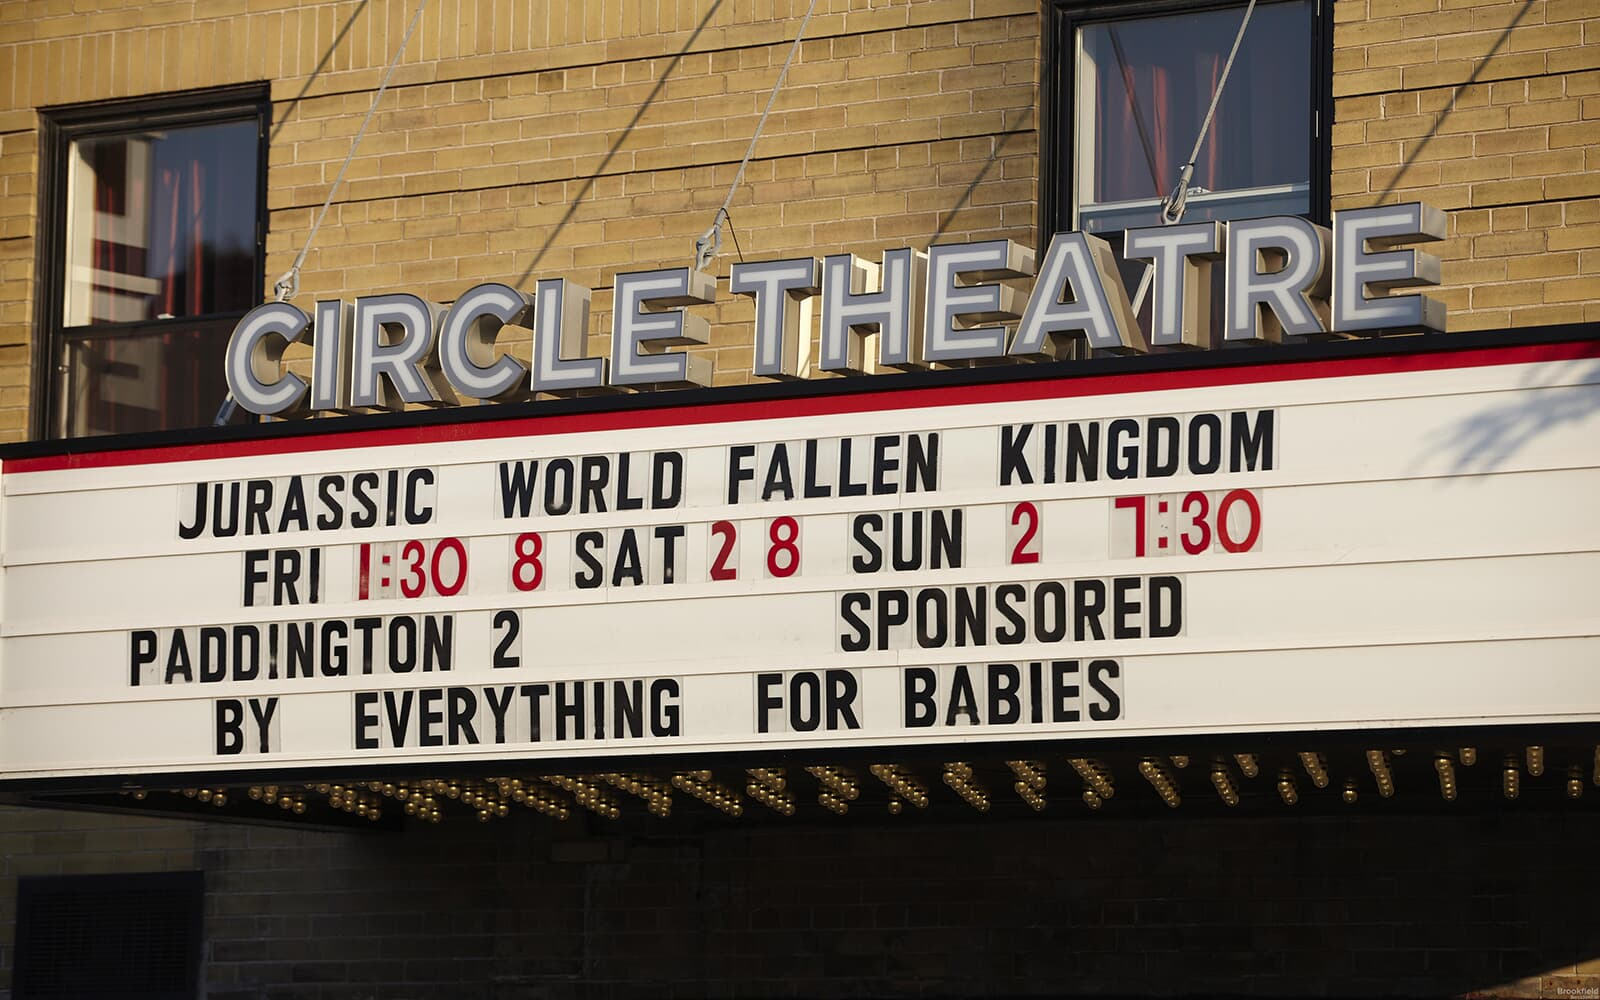 Circle Theatre in Baxter, ON